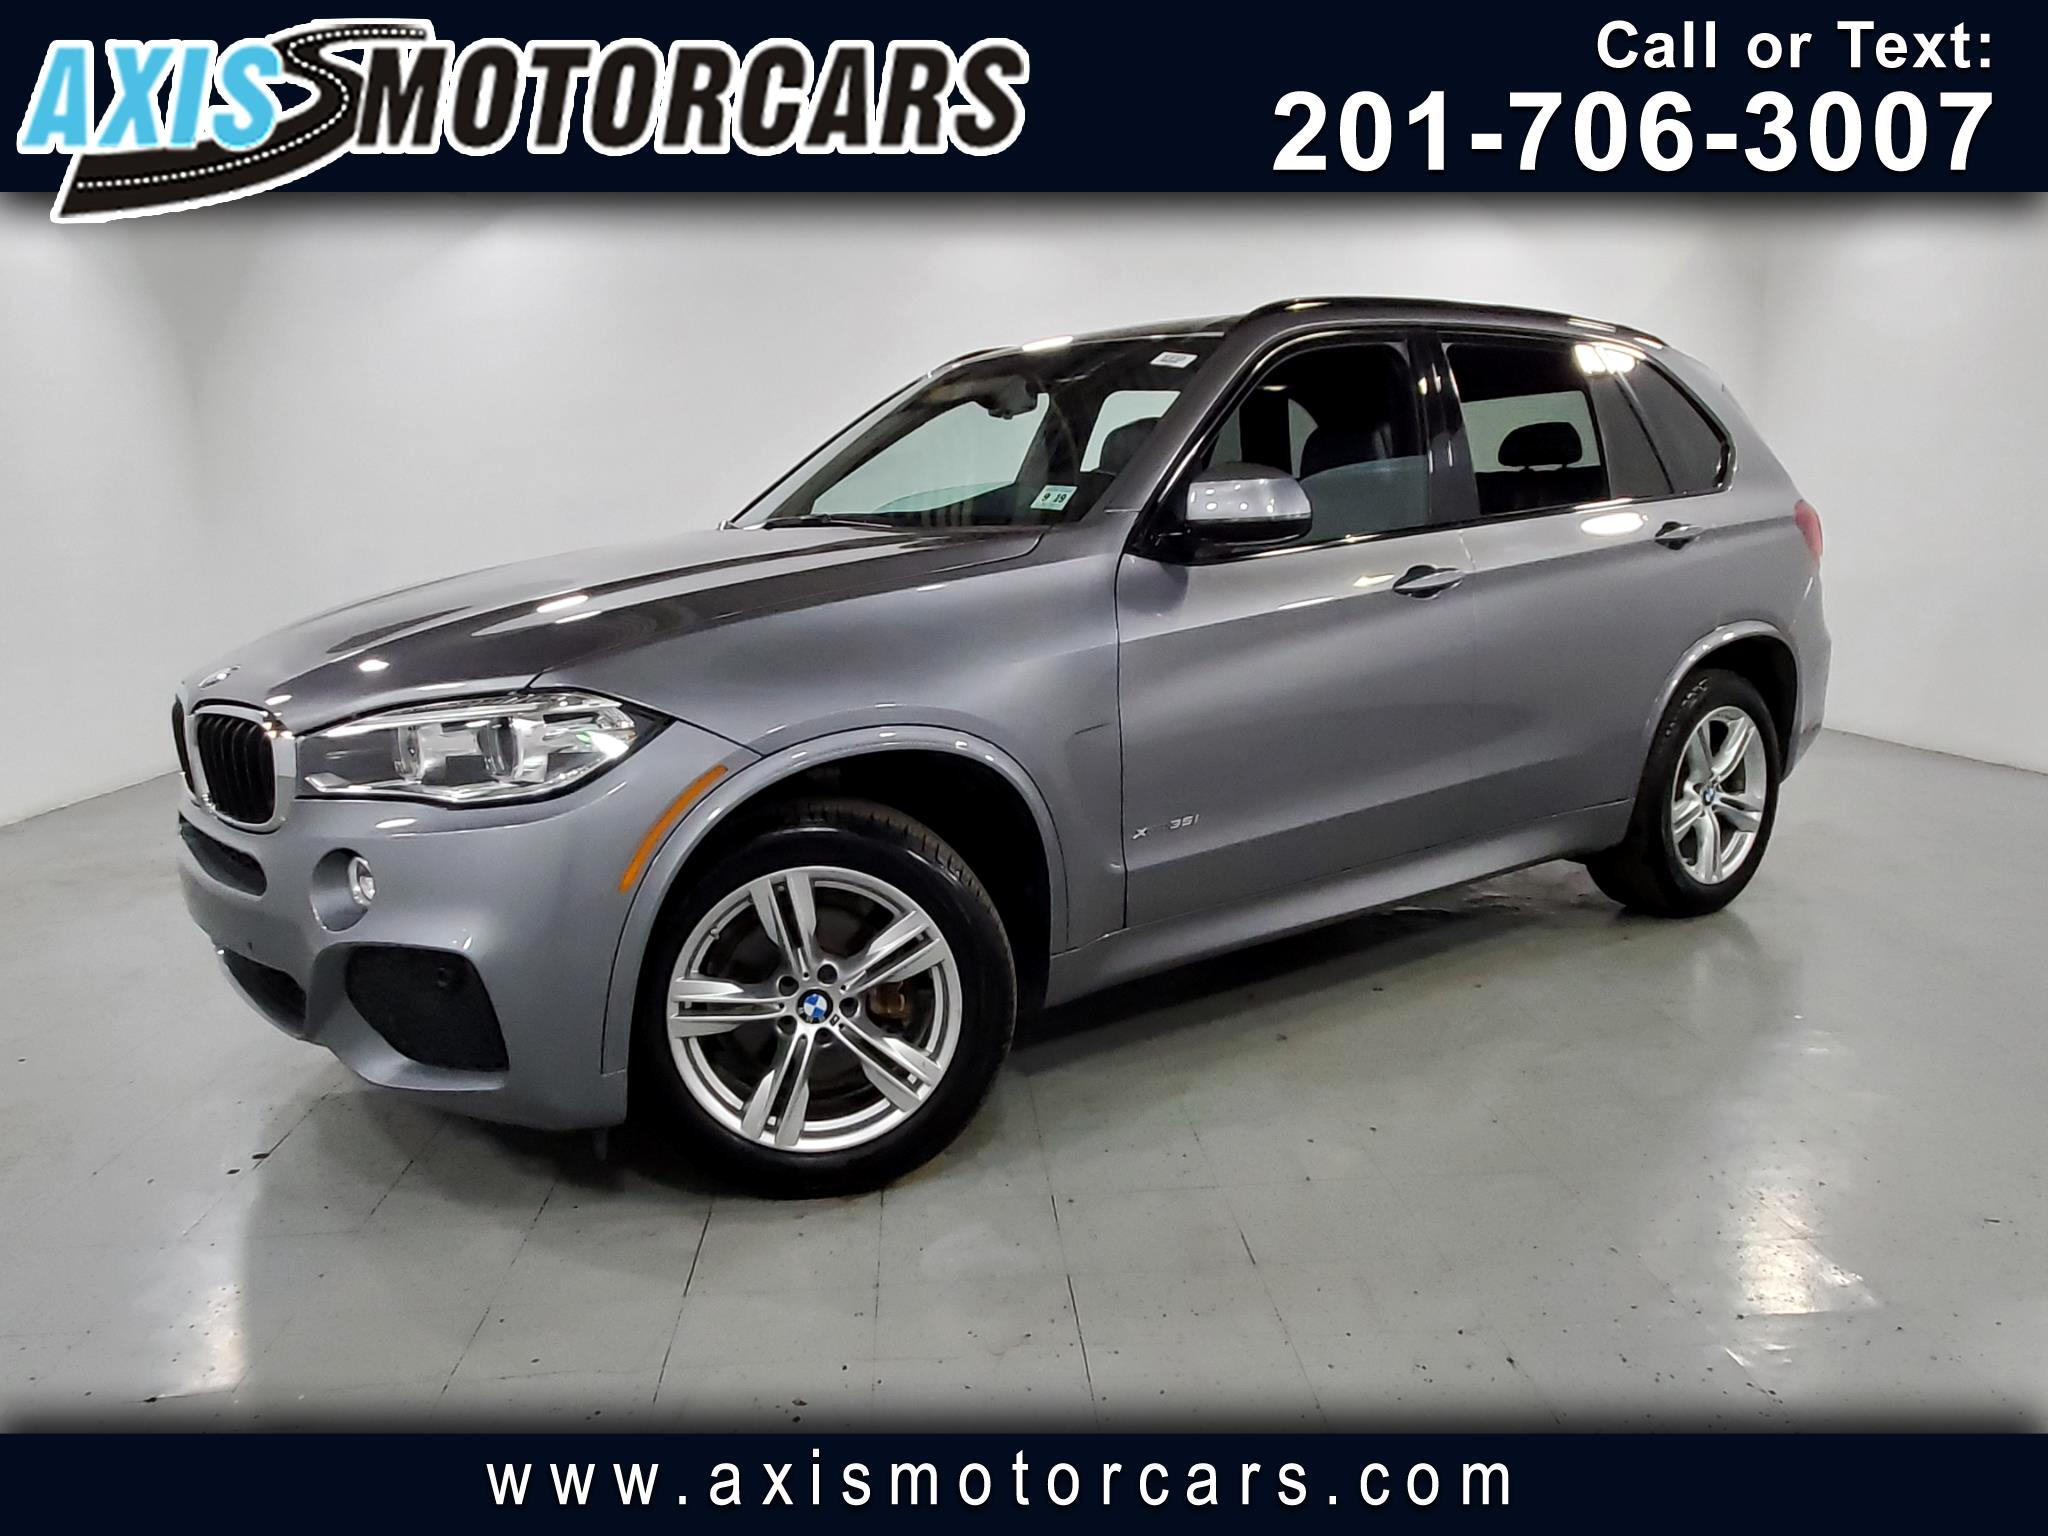 2014 BMW X5 M PKG w/Panoramic Roof Navigation Backup Camera